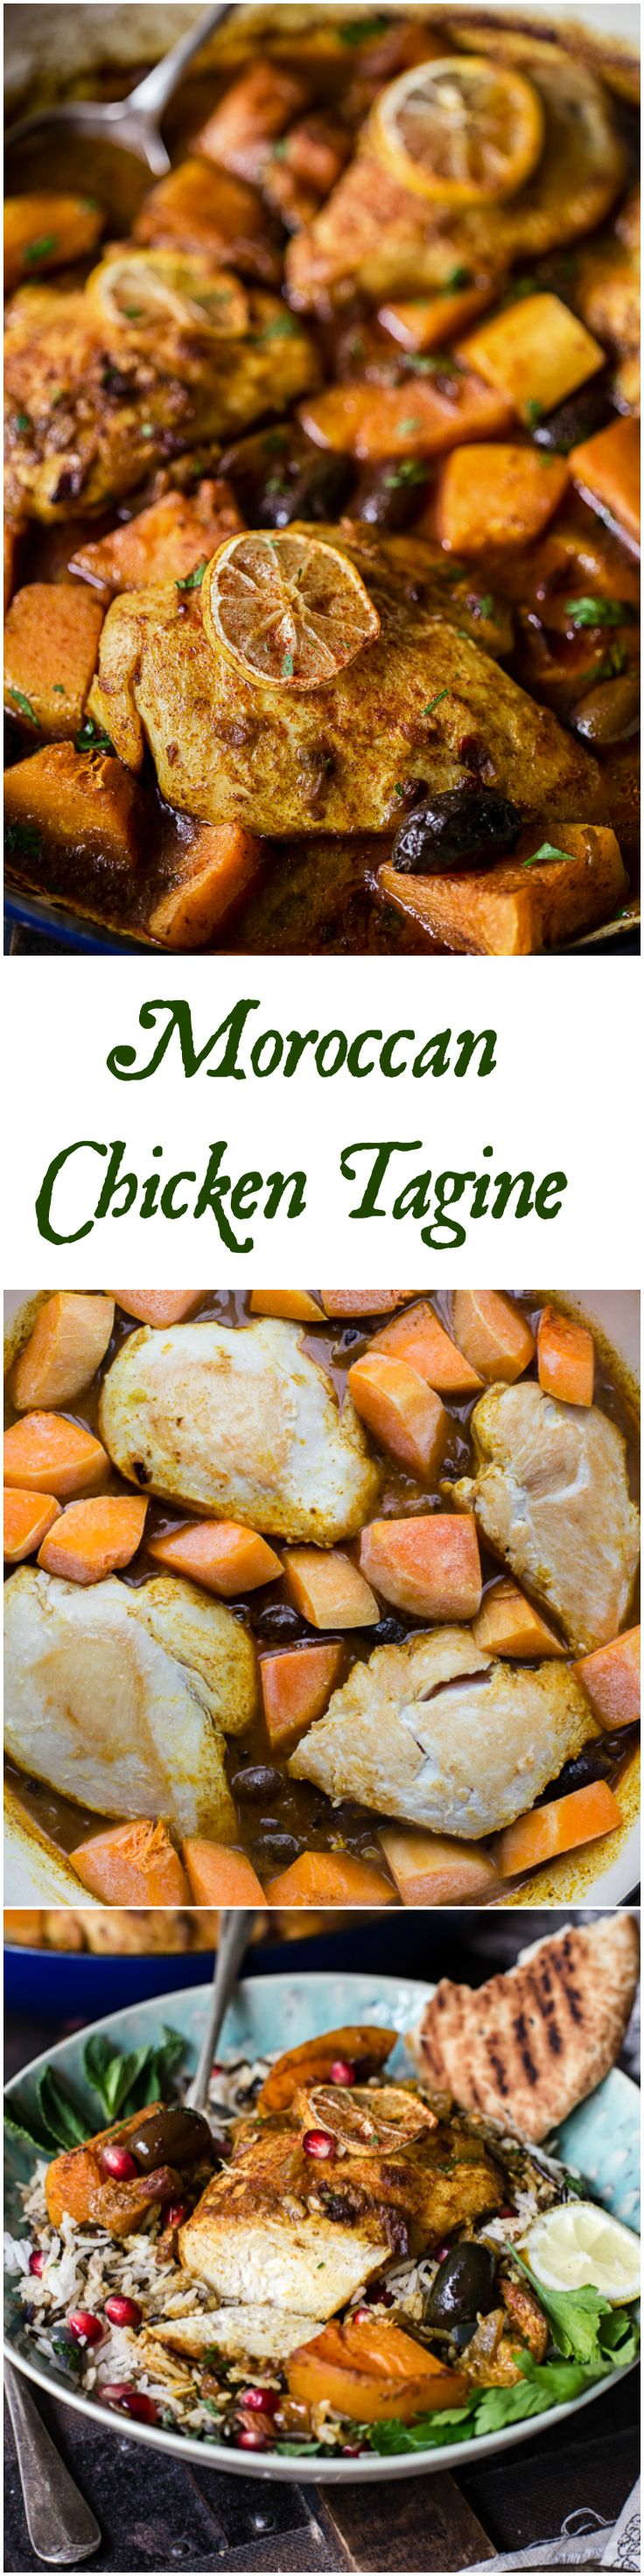 This Moroccan Chicken Tagine flavoured with warm and aromatic spices is a huge crowd pleaser due to its delicious and exotic taste!